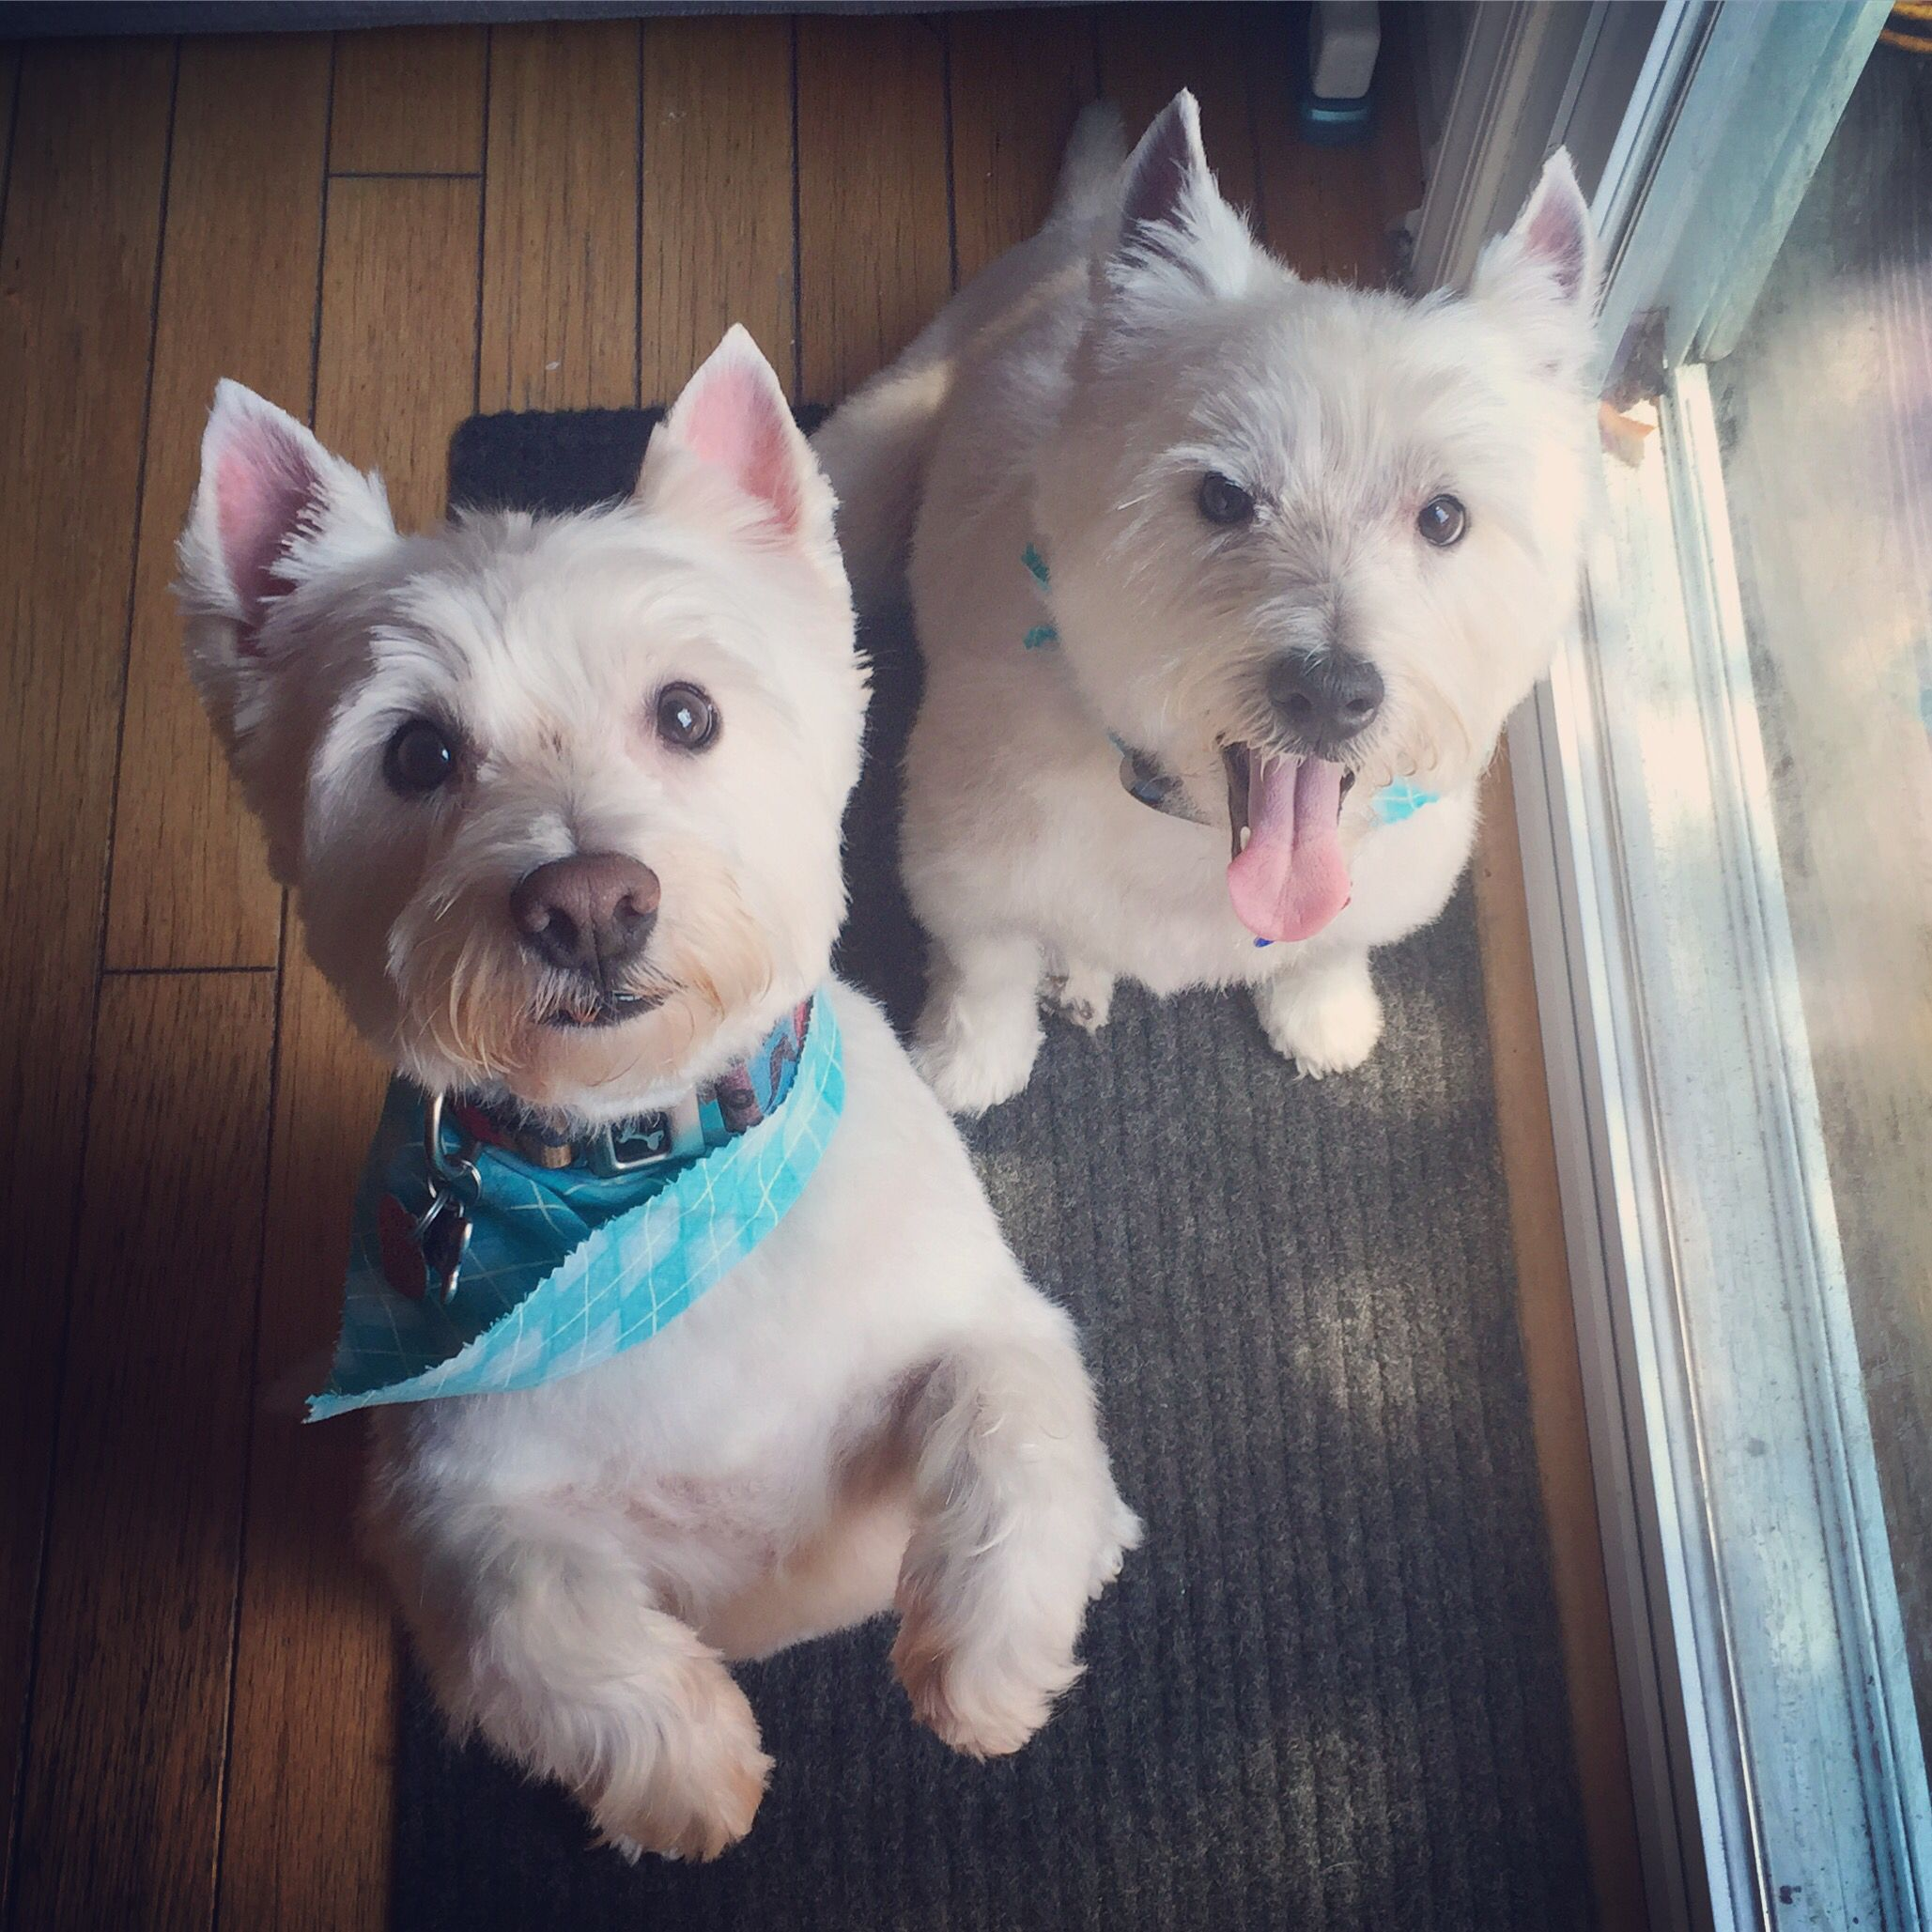 mobile grooming makes westie haircuts so easy and fun for the boys